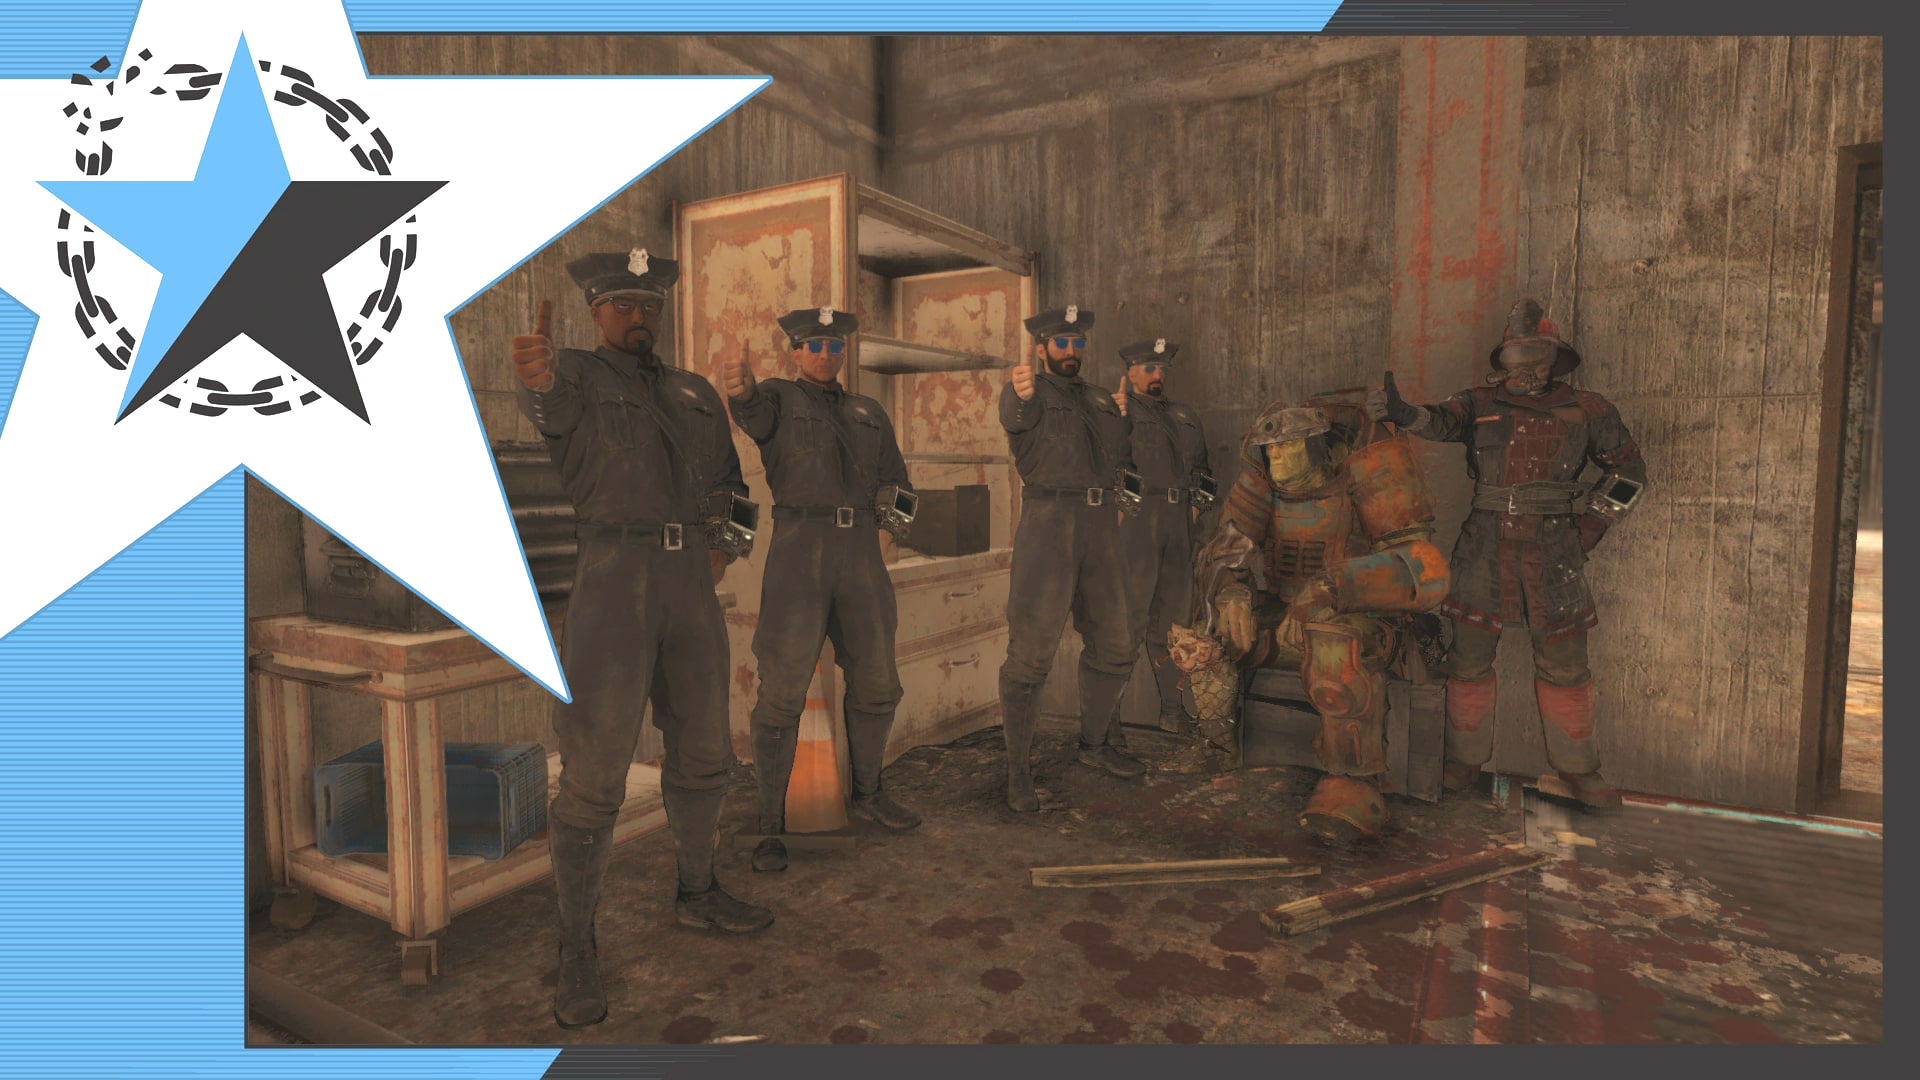 Fallout 76 players set up in-game police department to protect and